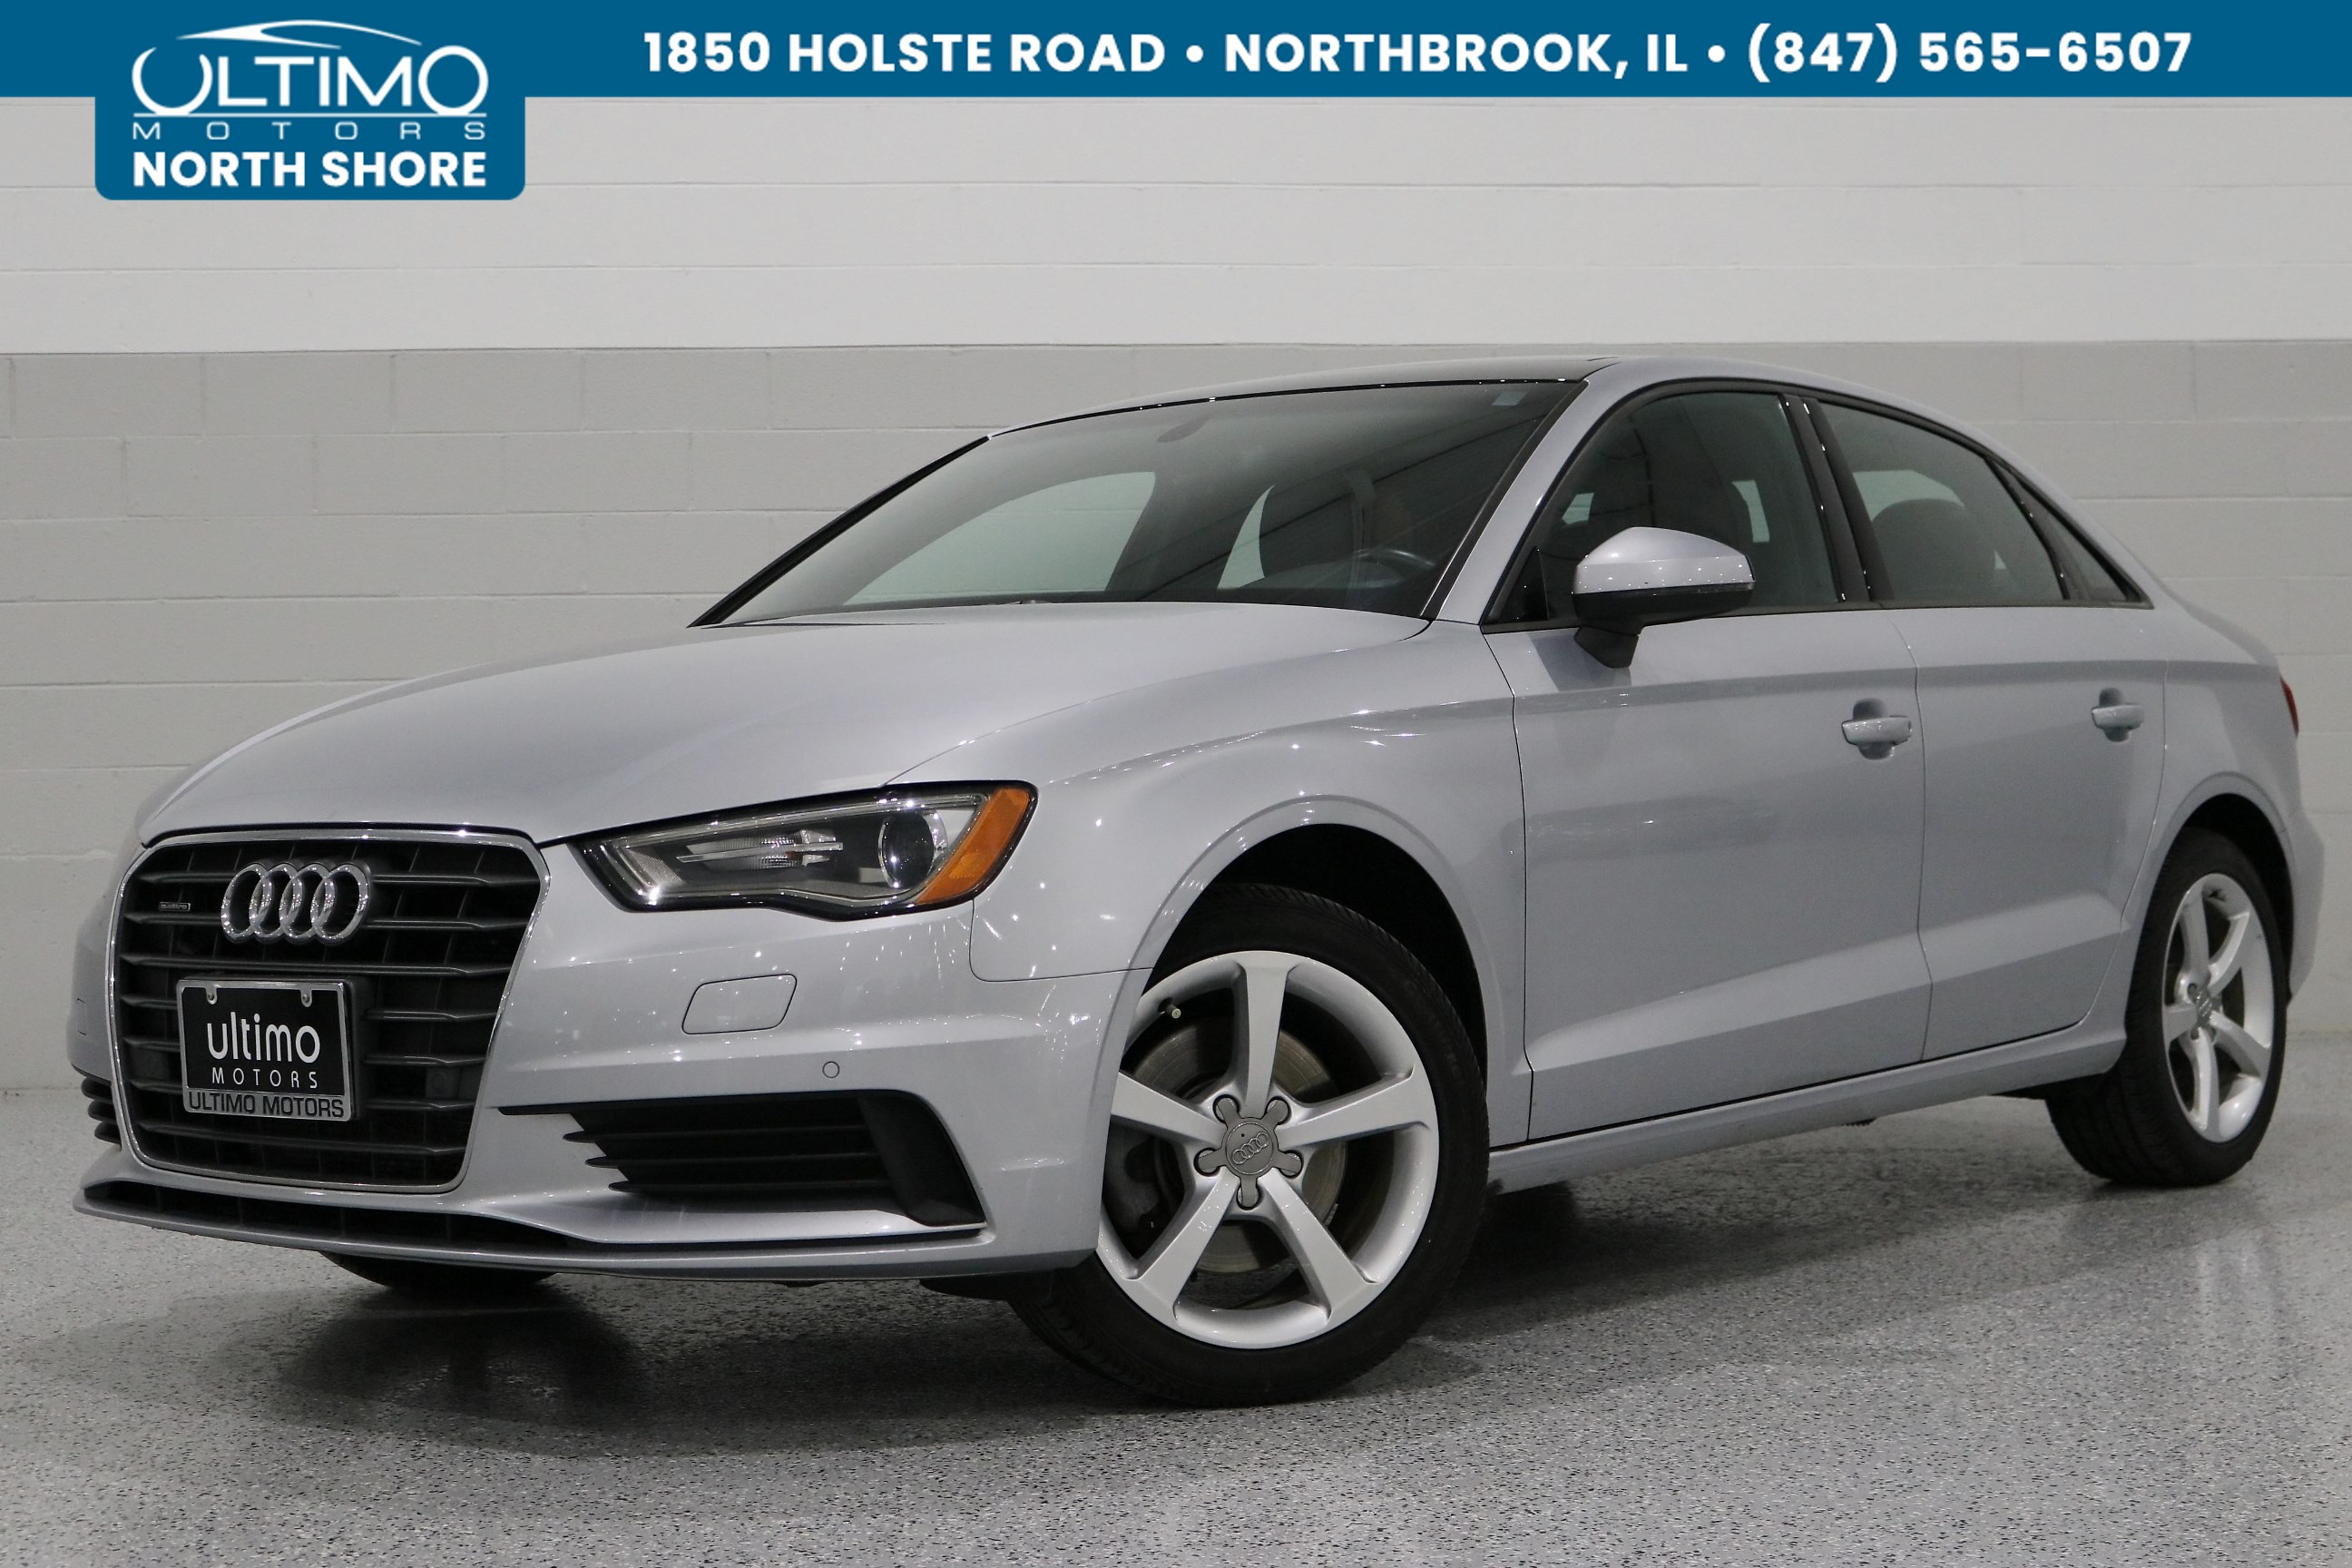 Pre-Owned 2016 Audi A3 2.0T Premium, MMI Nav. Plus, Heated Seats, Advanced Key, Panoramic Roof.